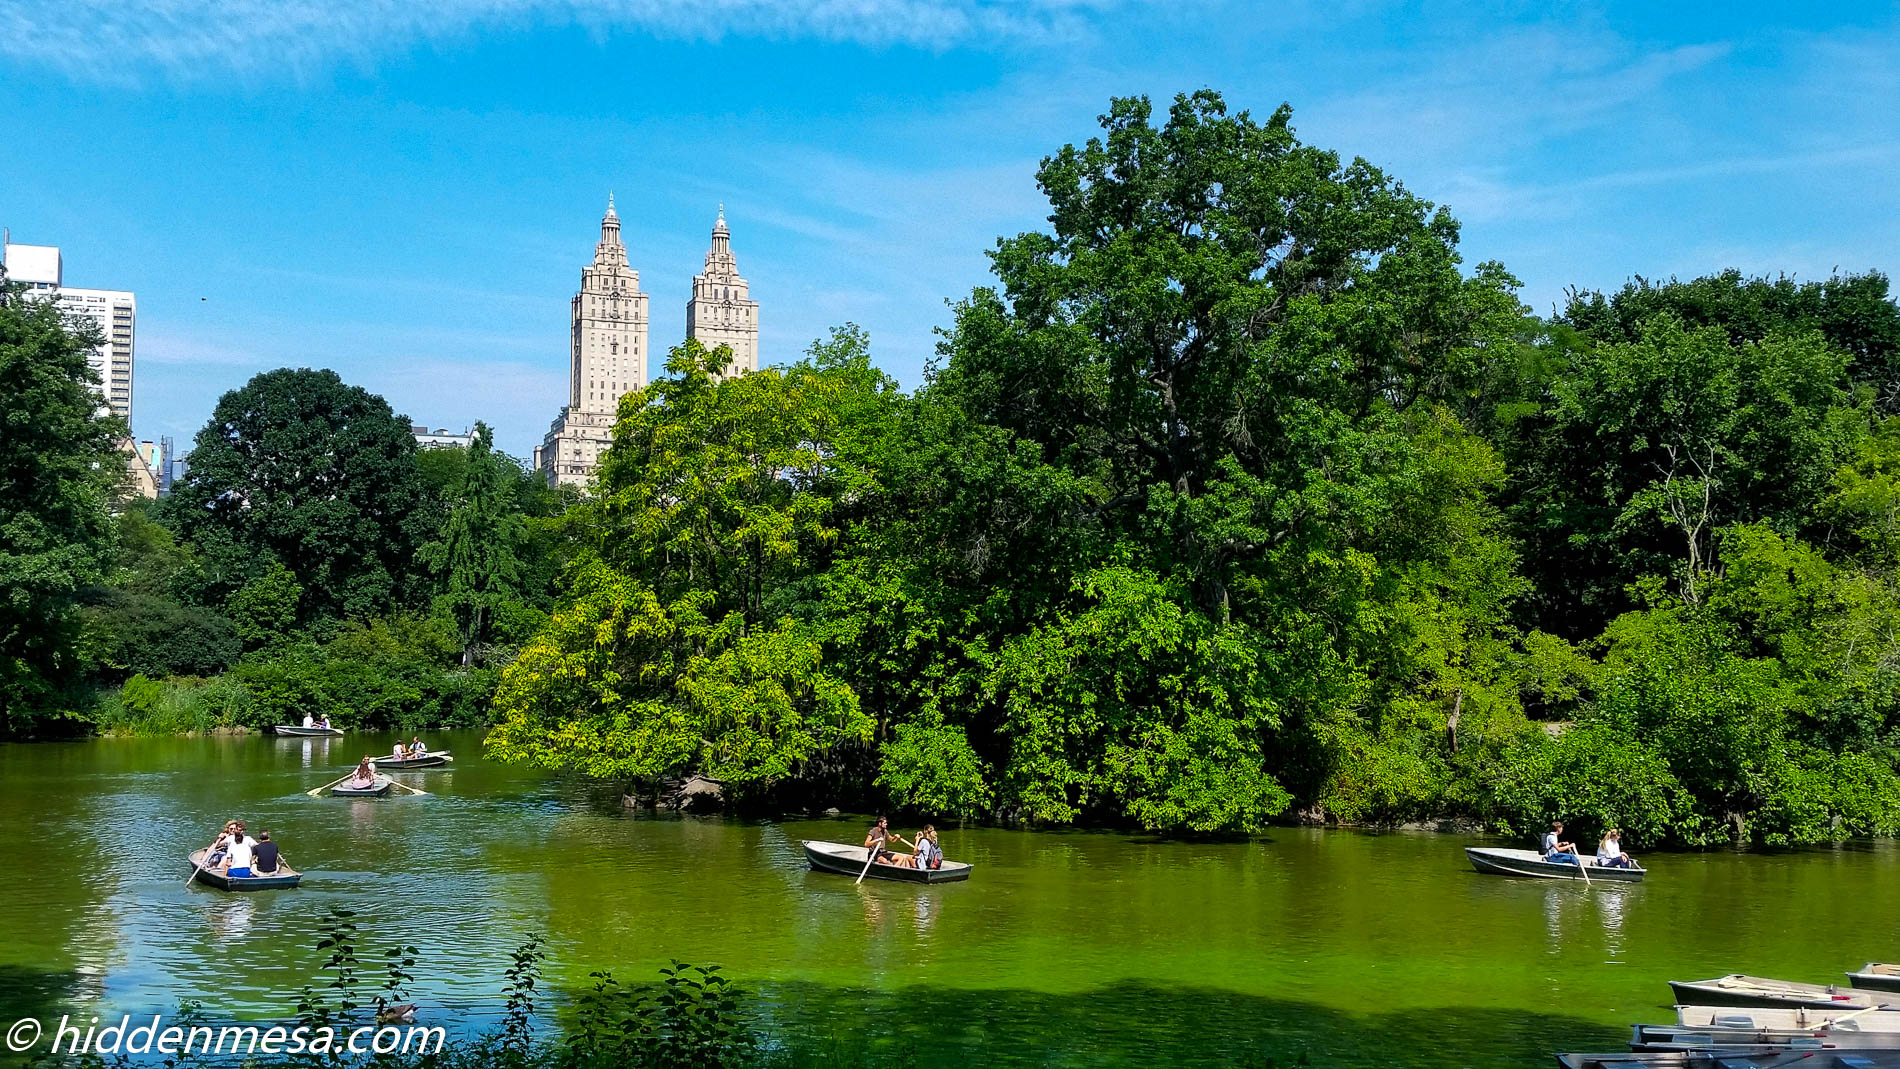 Rowboats in Central Park.